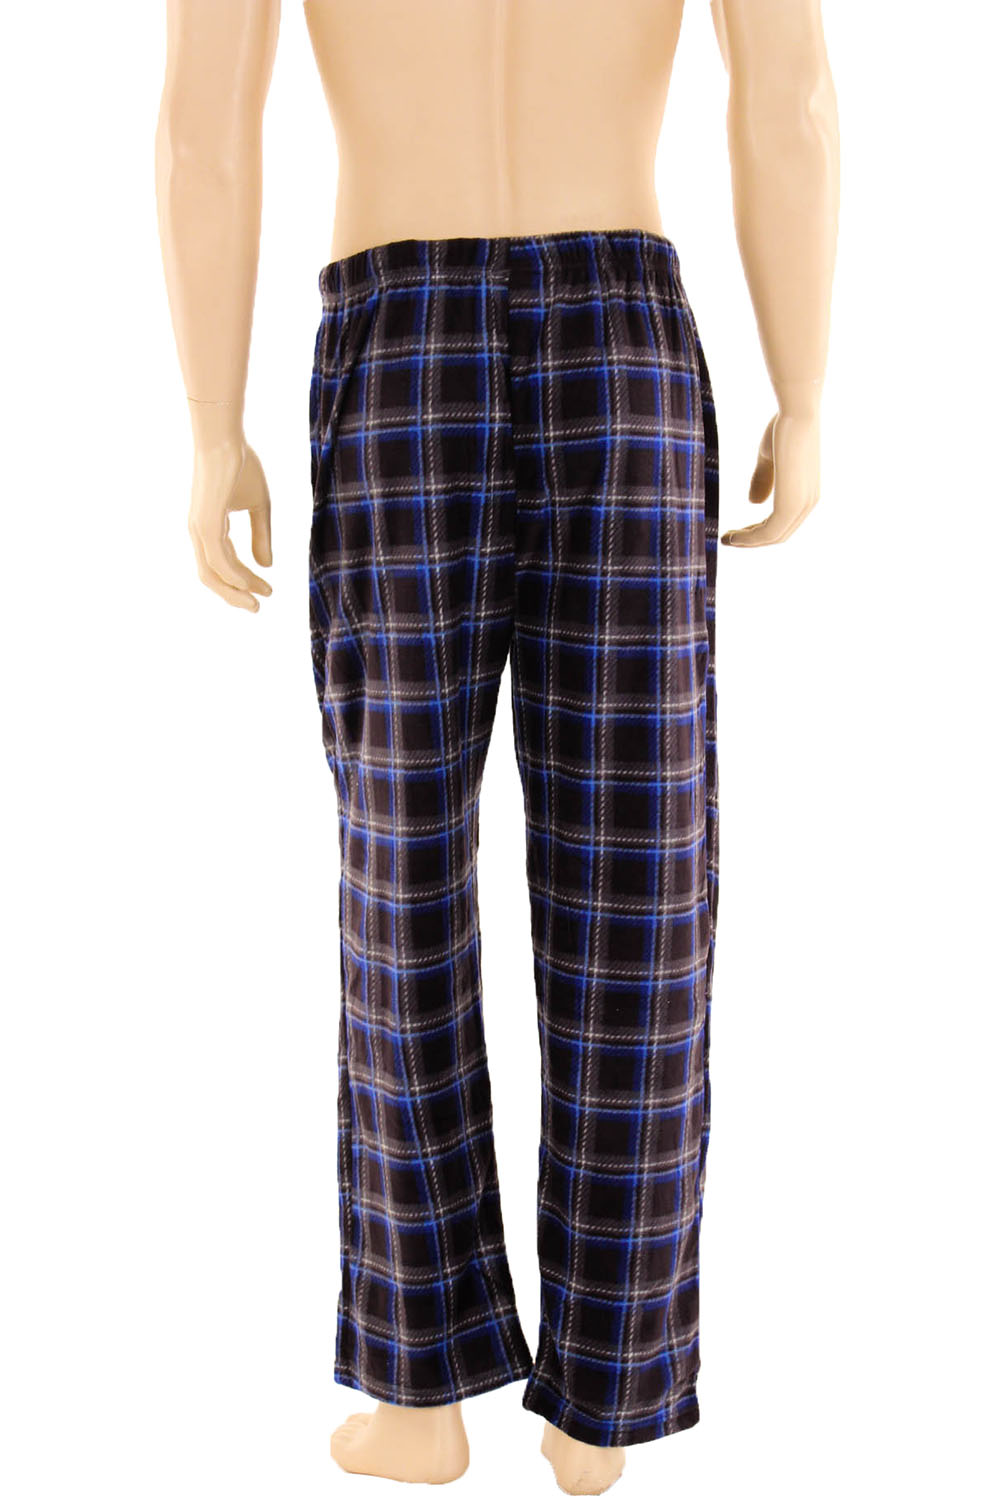 Find great deals on eBay for fleece pajama pants. Shop with confidence.